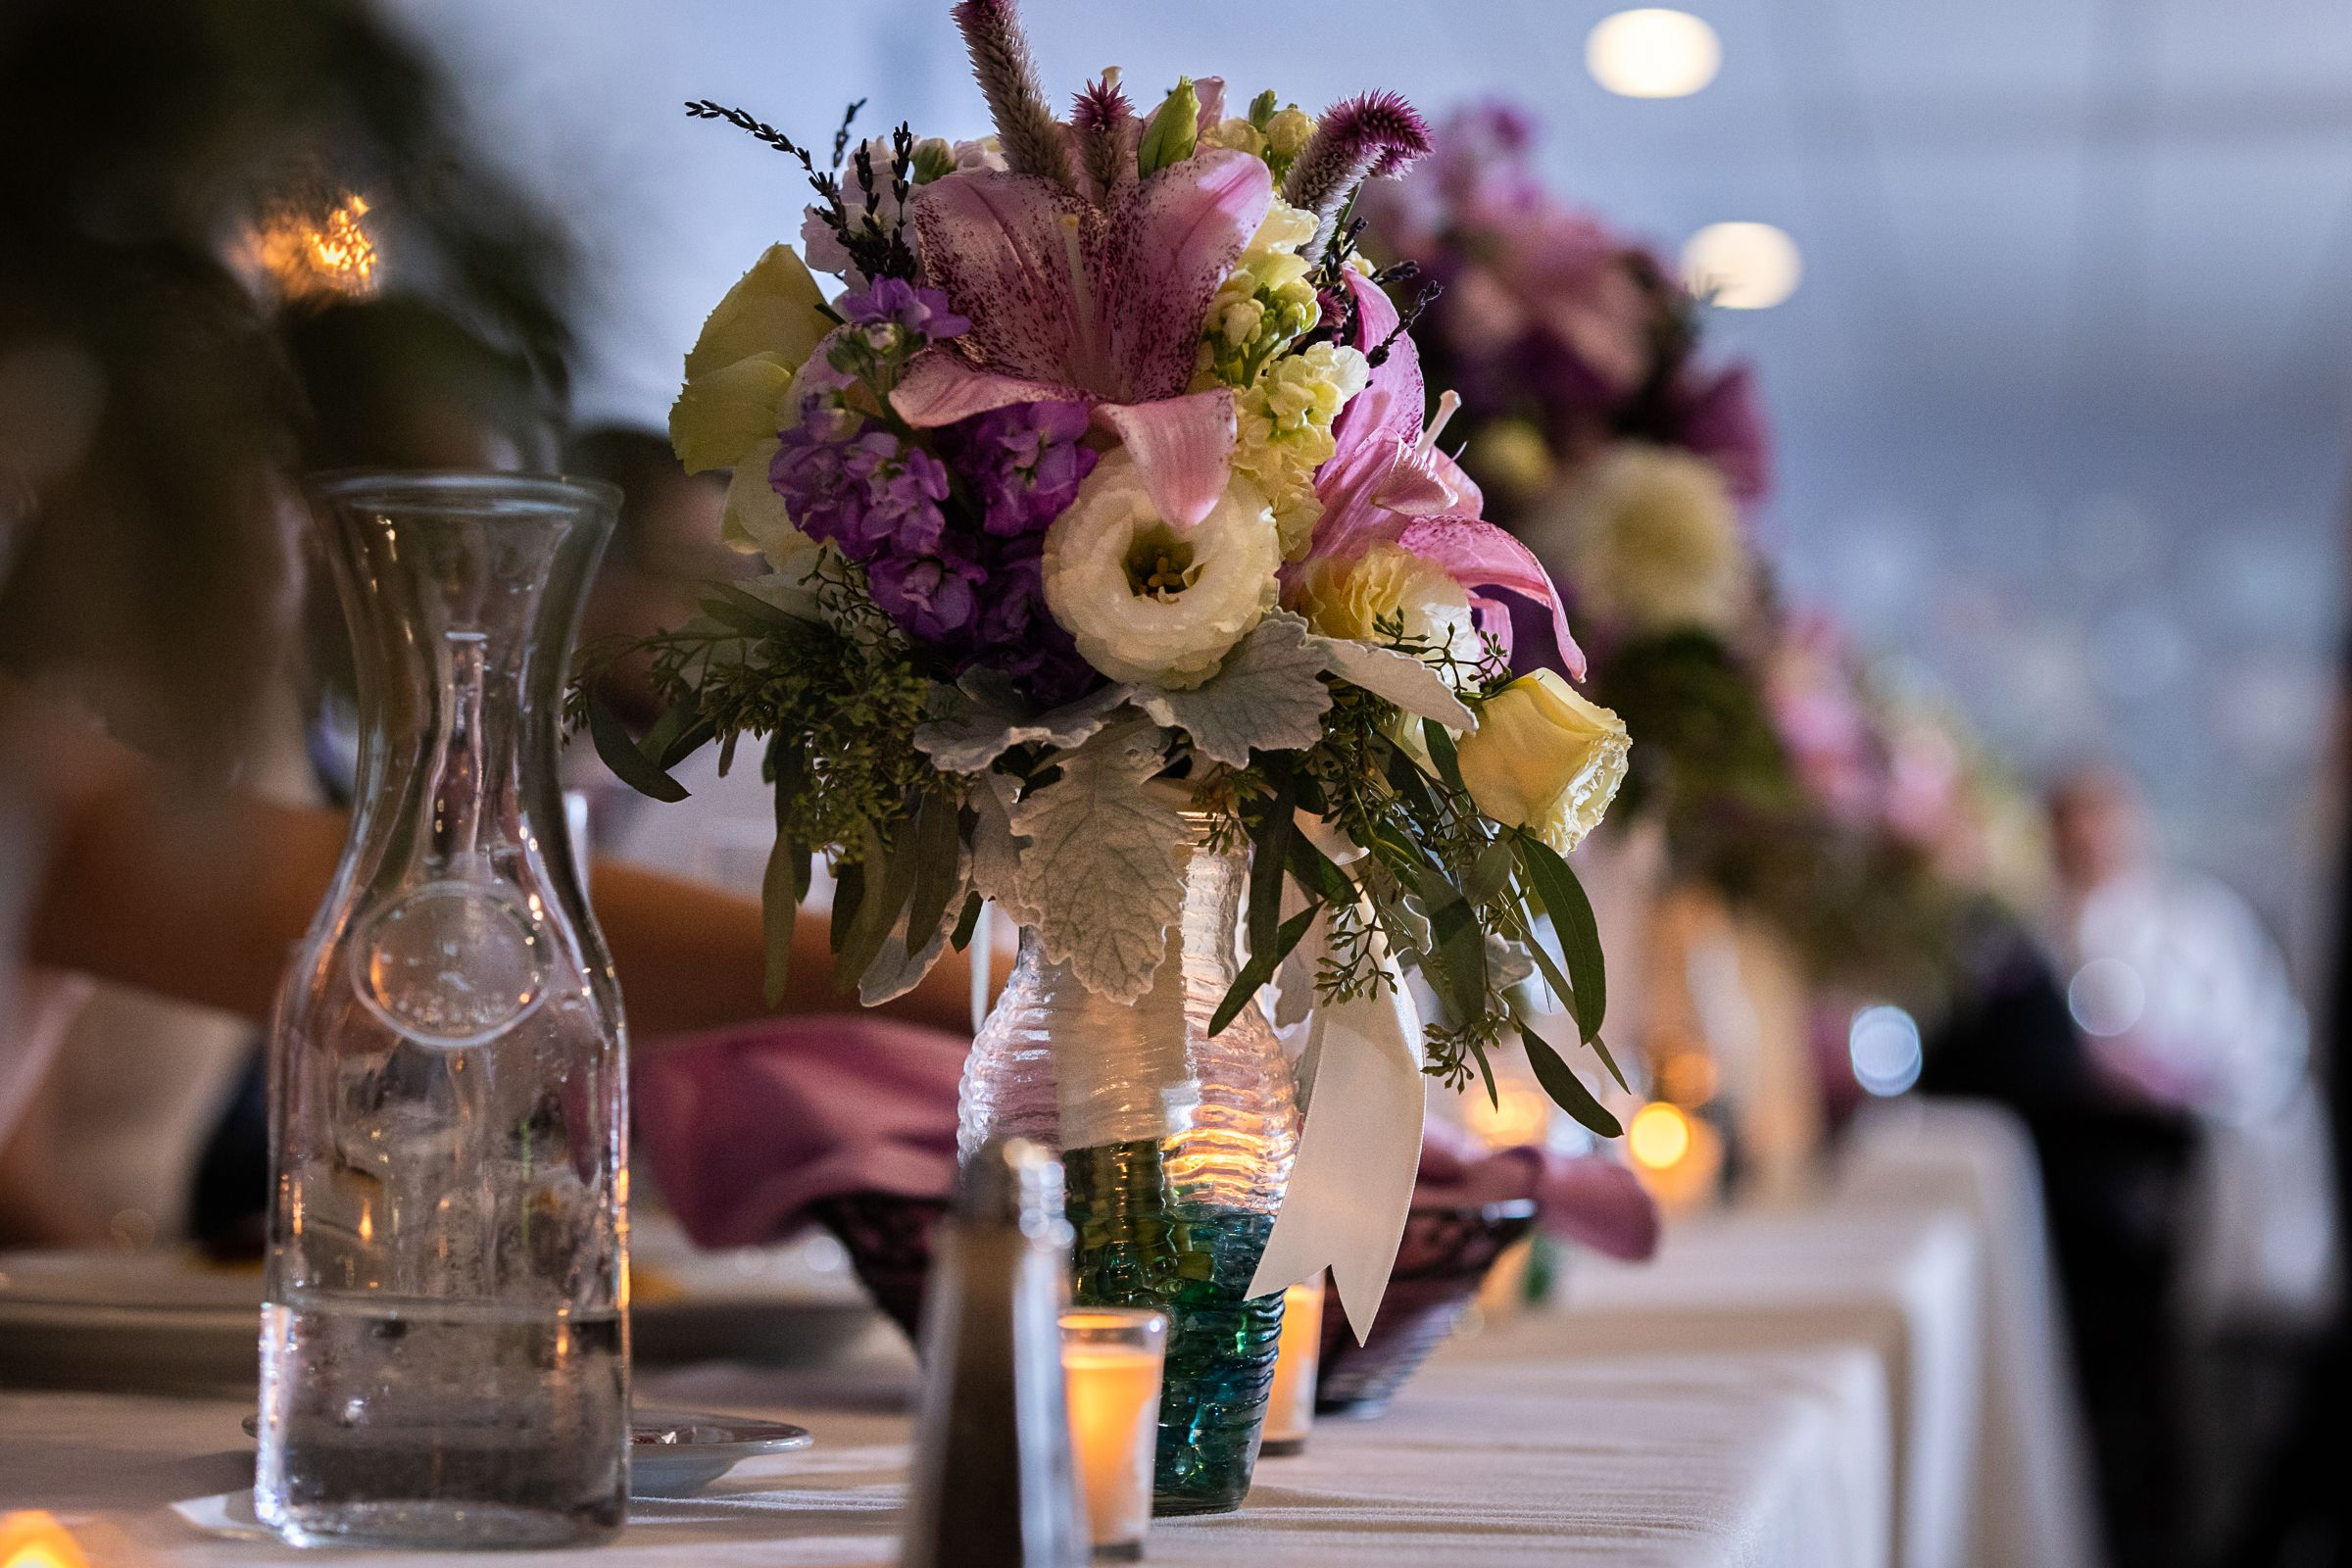 The ceremony was beautiful, now it's time to party.  The  bouquets are too pretty to toss aside, use them on your head table!  A lot of venues even have vases you can use for FREE to display your bouquets.    #headtabledecor #weddingflowers #bridesmaidflowers #bridesflowers #chicagomichiganwedding #swmichiganweddingvenue #flowers #tabledecor #purpleflowers #purpleyellowwhitebouquets